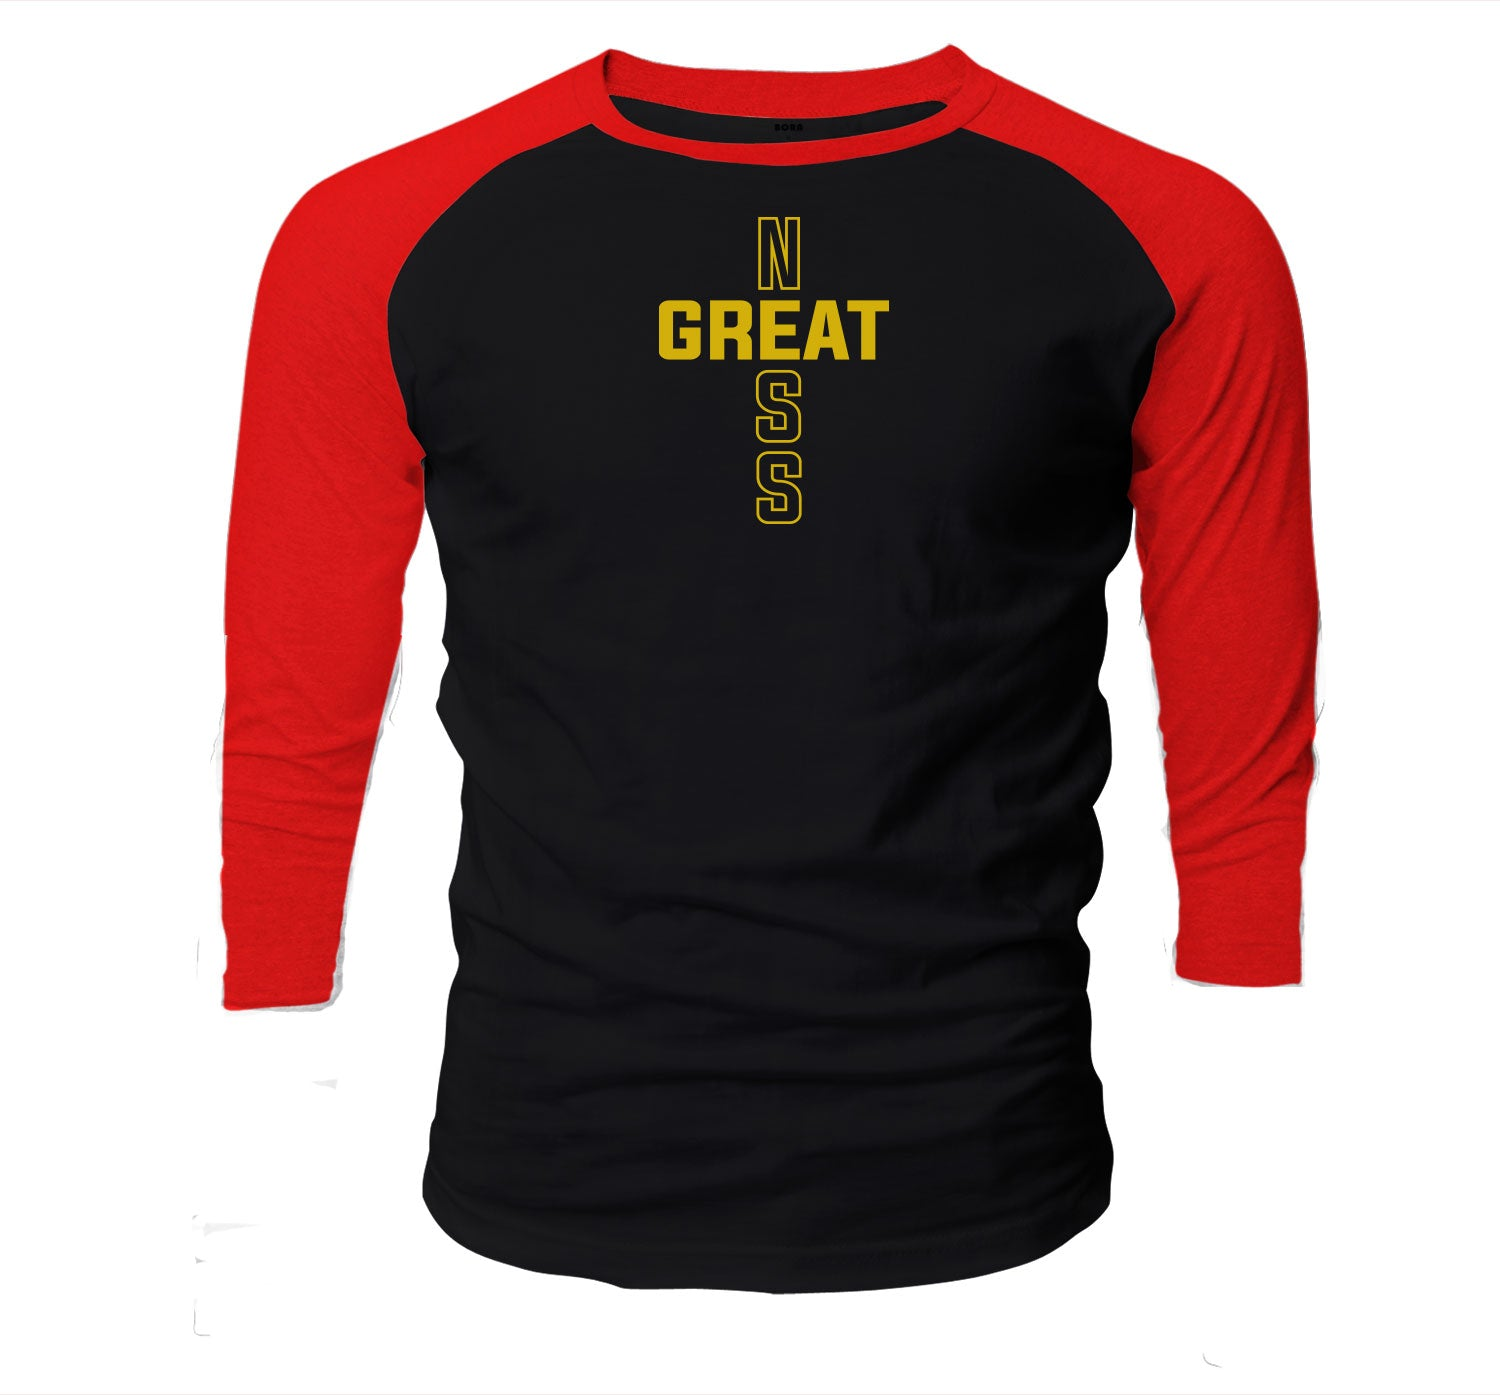 Jordan 12 Super Bowl Raglan - Greatness Cross - Black